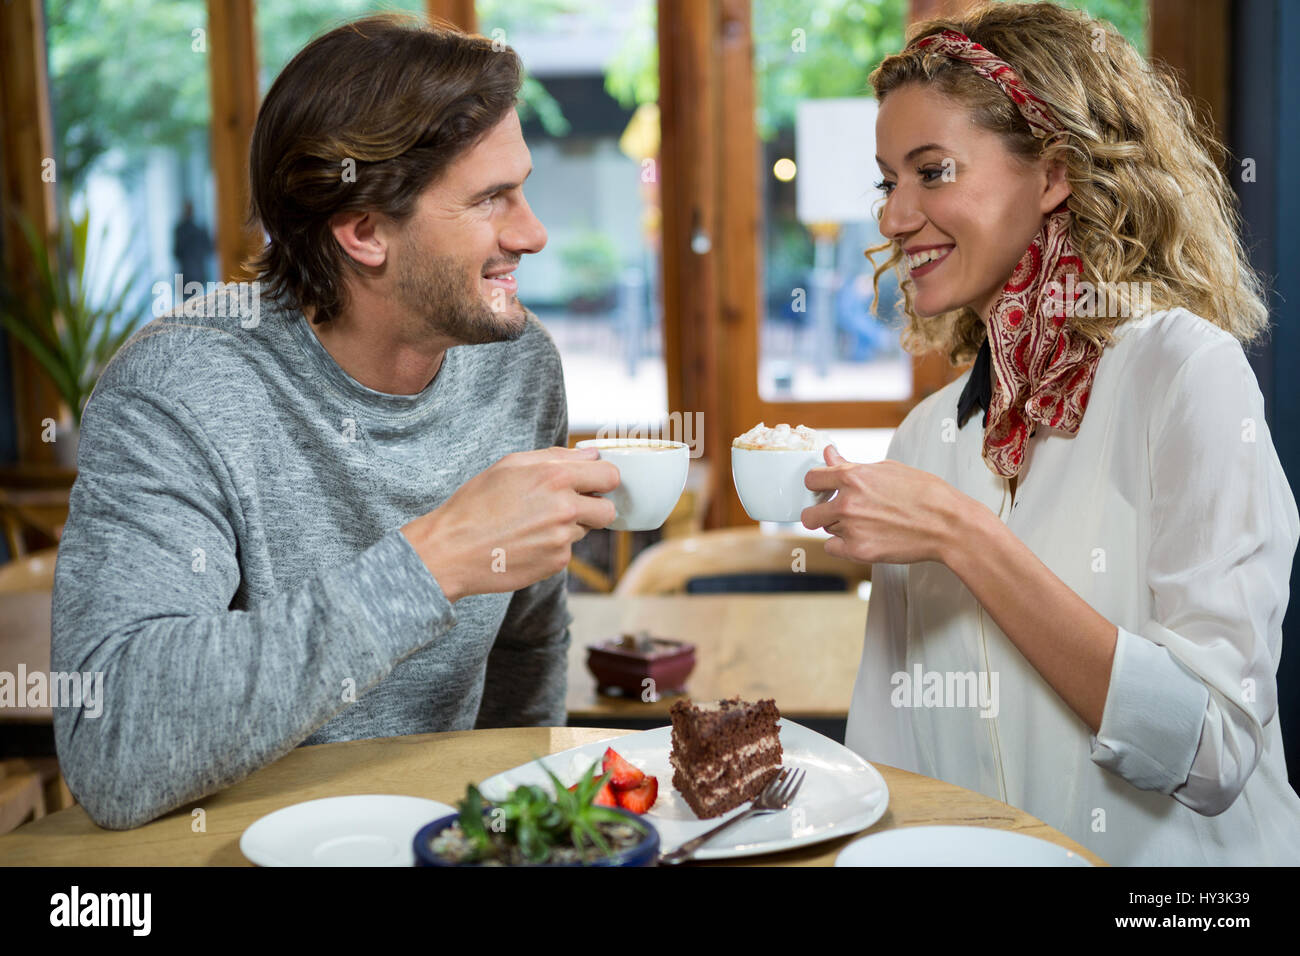 Smiling young couple having coffee at table in cafeteria Banque D'Images